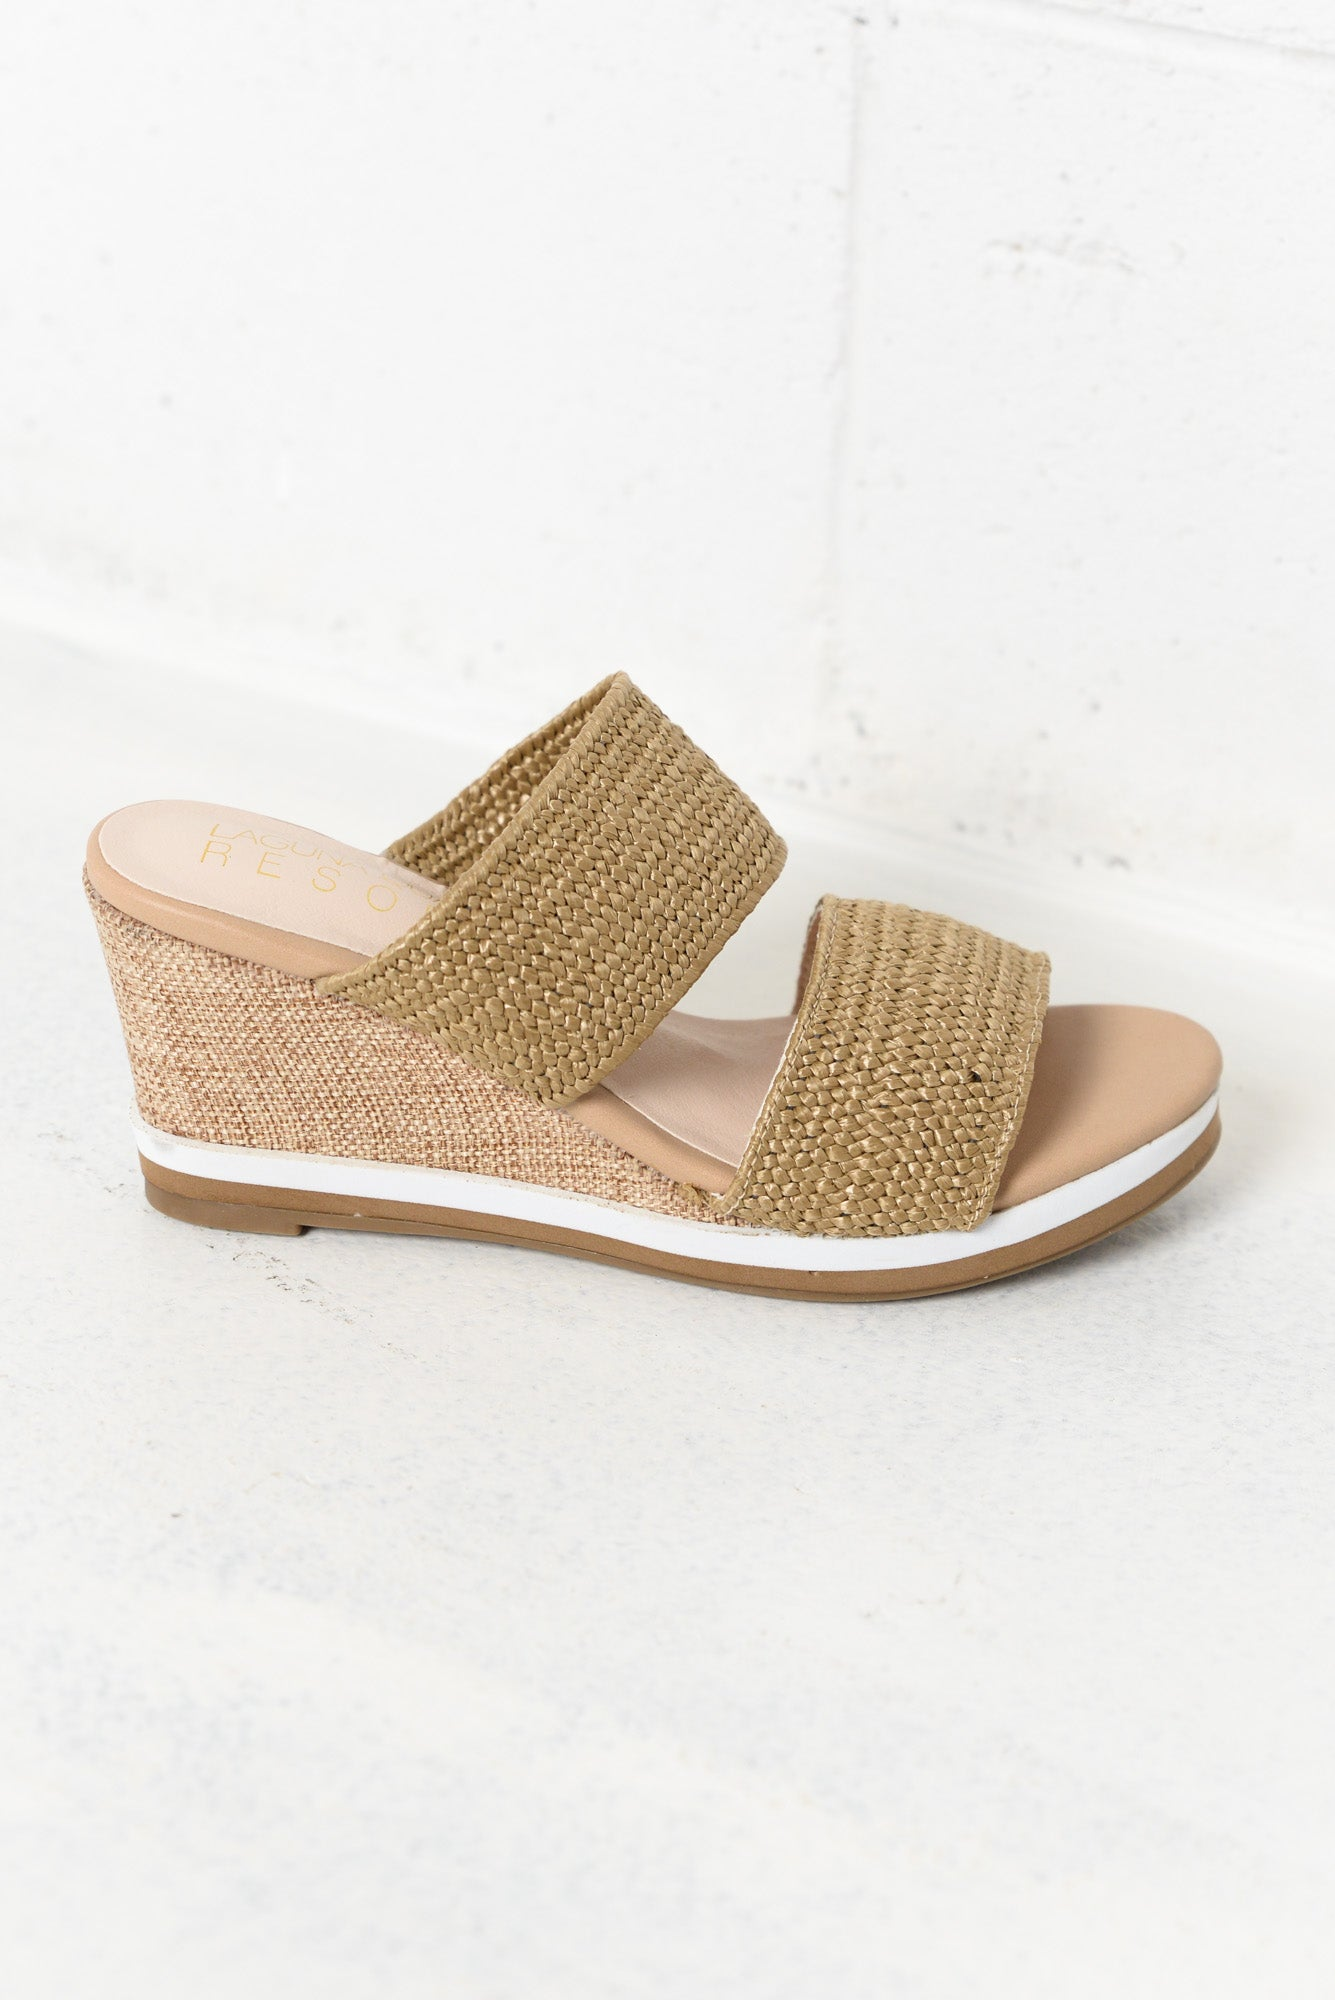 Tods Natural Wedge Mule Sandal